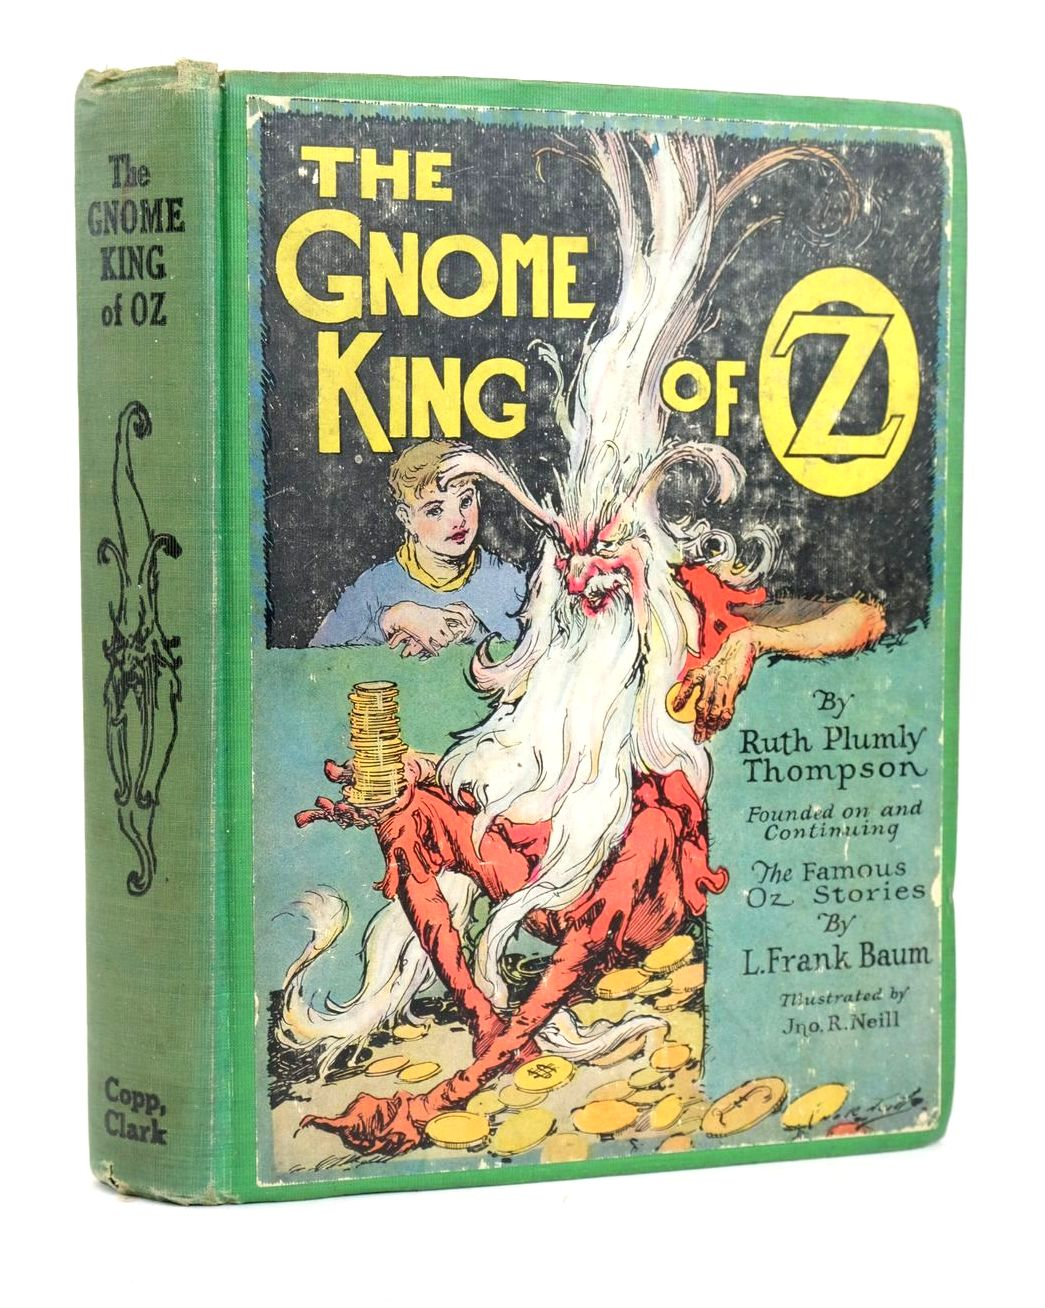 Photo of THE GNOME KING OF OZ written by Baum, L. Frank Thompson, Ruth Plumly illustrated by Neill, John R. published by The Copp Clark Co. Limited (STOCK CODE: 1319449)  for sale by Stella & Rose's Books